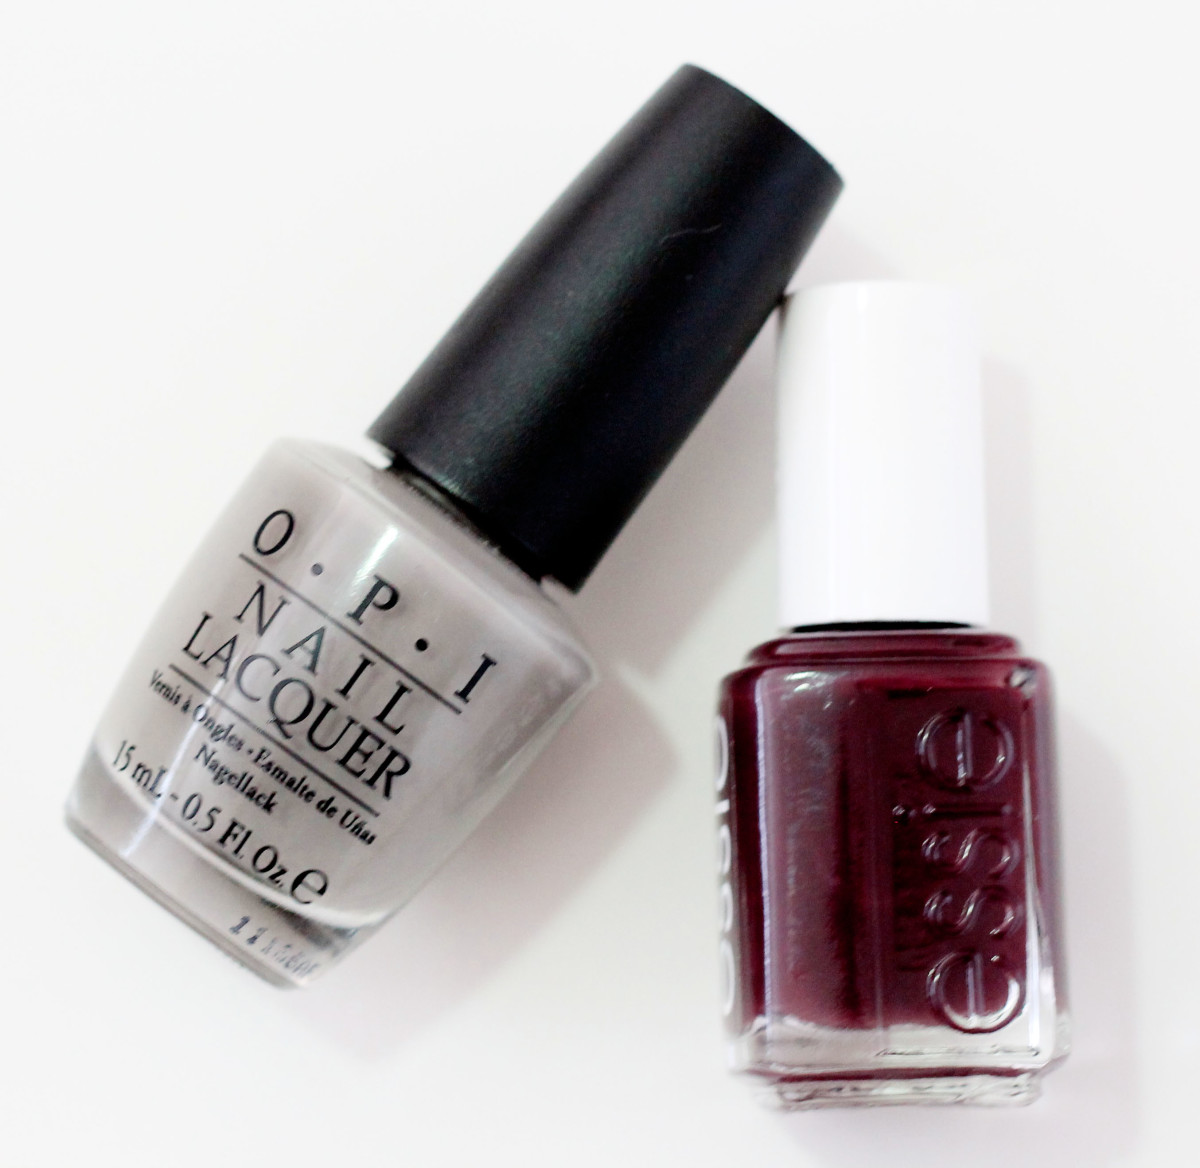 OPI French Quarter For Your Thoughts and Essie Carry On